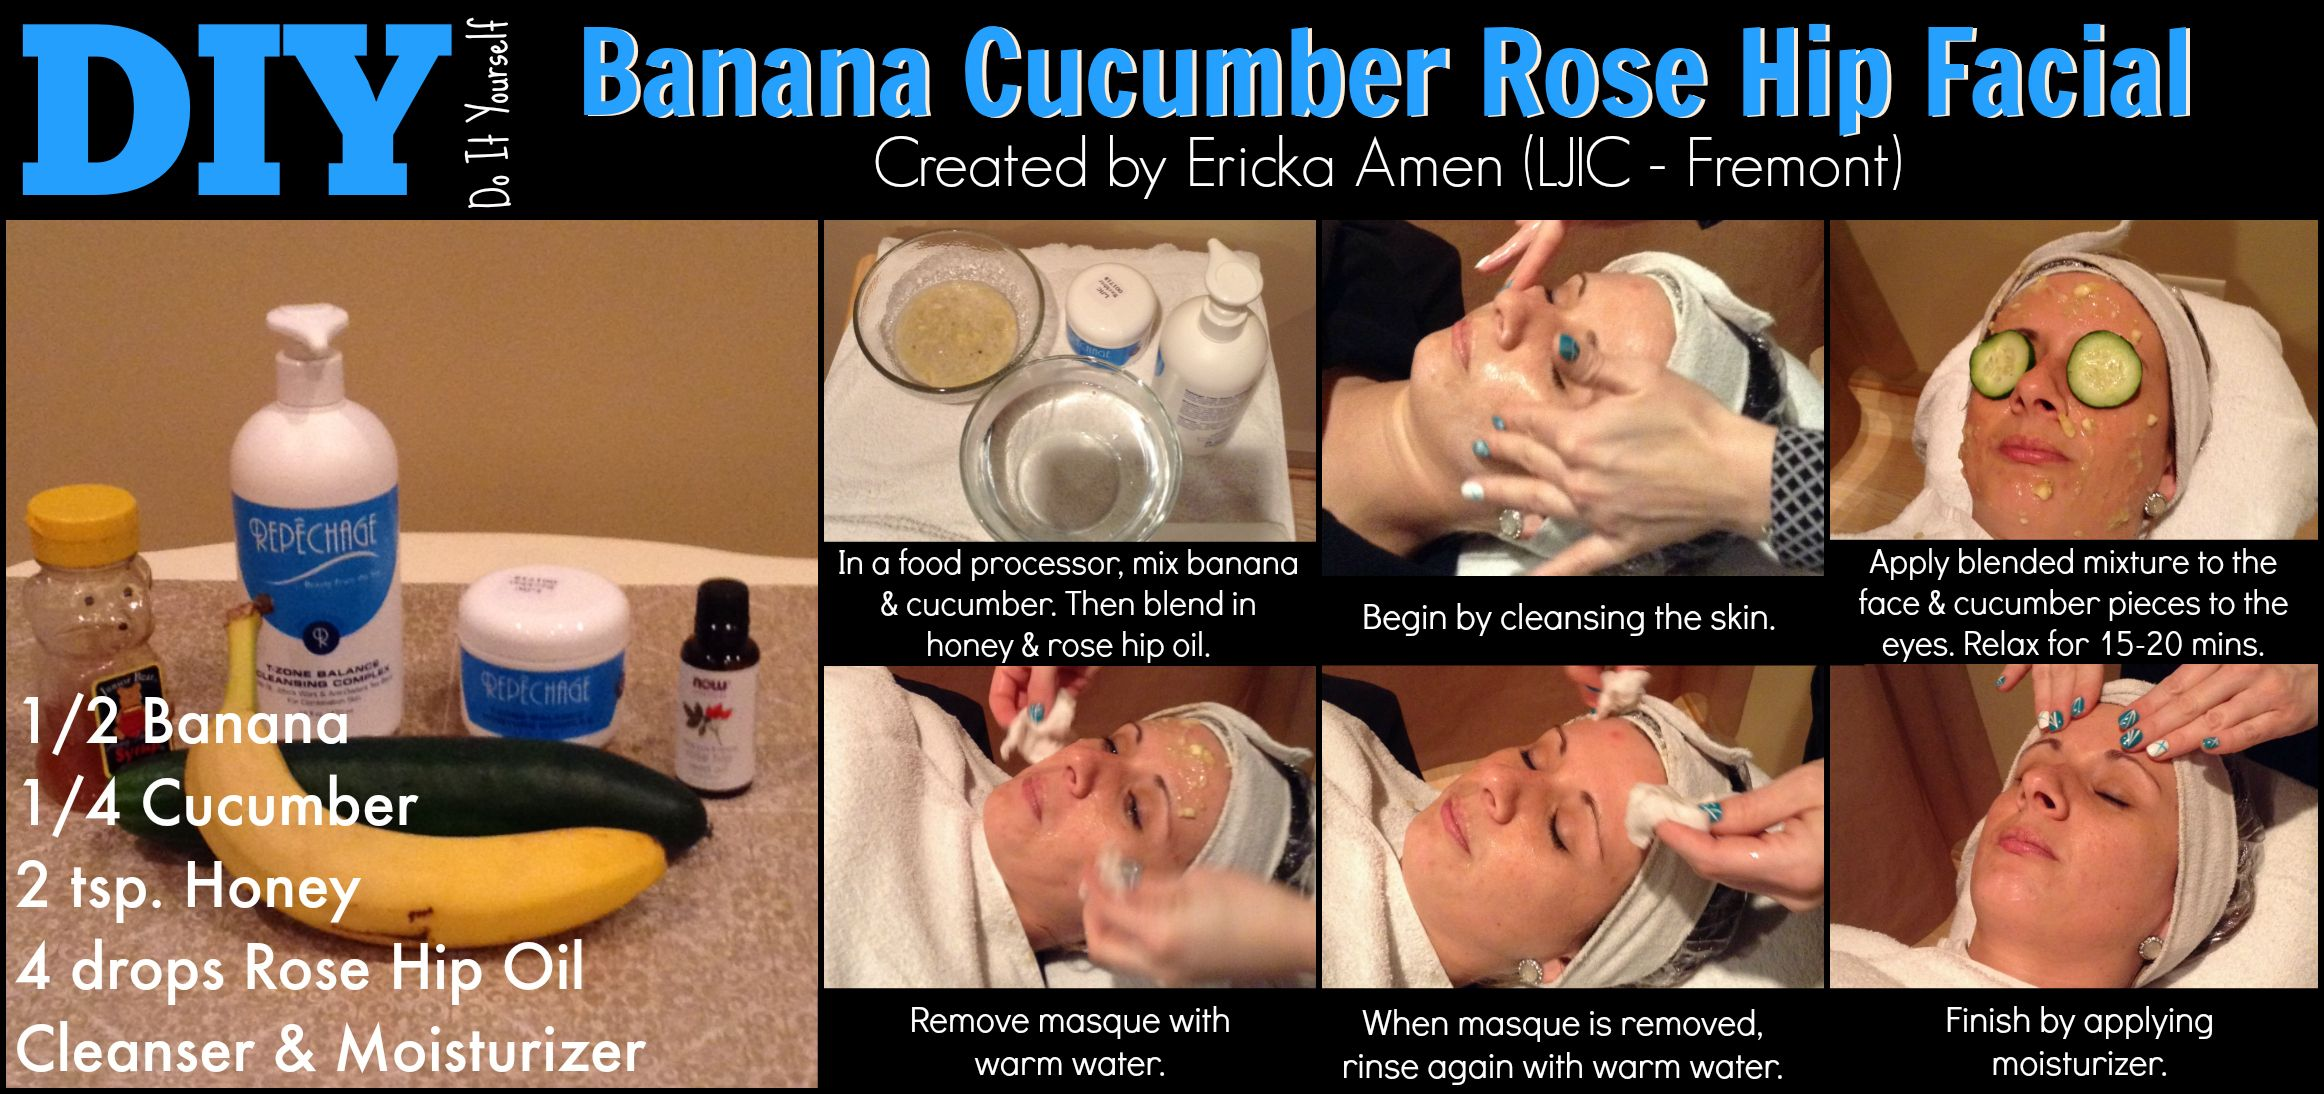 Check out today's Tues-Torial the Banana Cucumber Rose Hip Facial created by Ericka A. from #LJIC - Fremont! Great job Ericka & thanks for participating in today's #LJICtuesTorial! www.ljic.edu #LjicFRM  For a closer look at the products used visit,  http://ljic1.tumblr.com/post/113263092881/diy-banana-cucumber-rose-hip-facial www.facebook.com/lajamesinternational